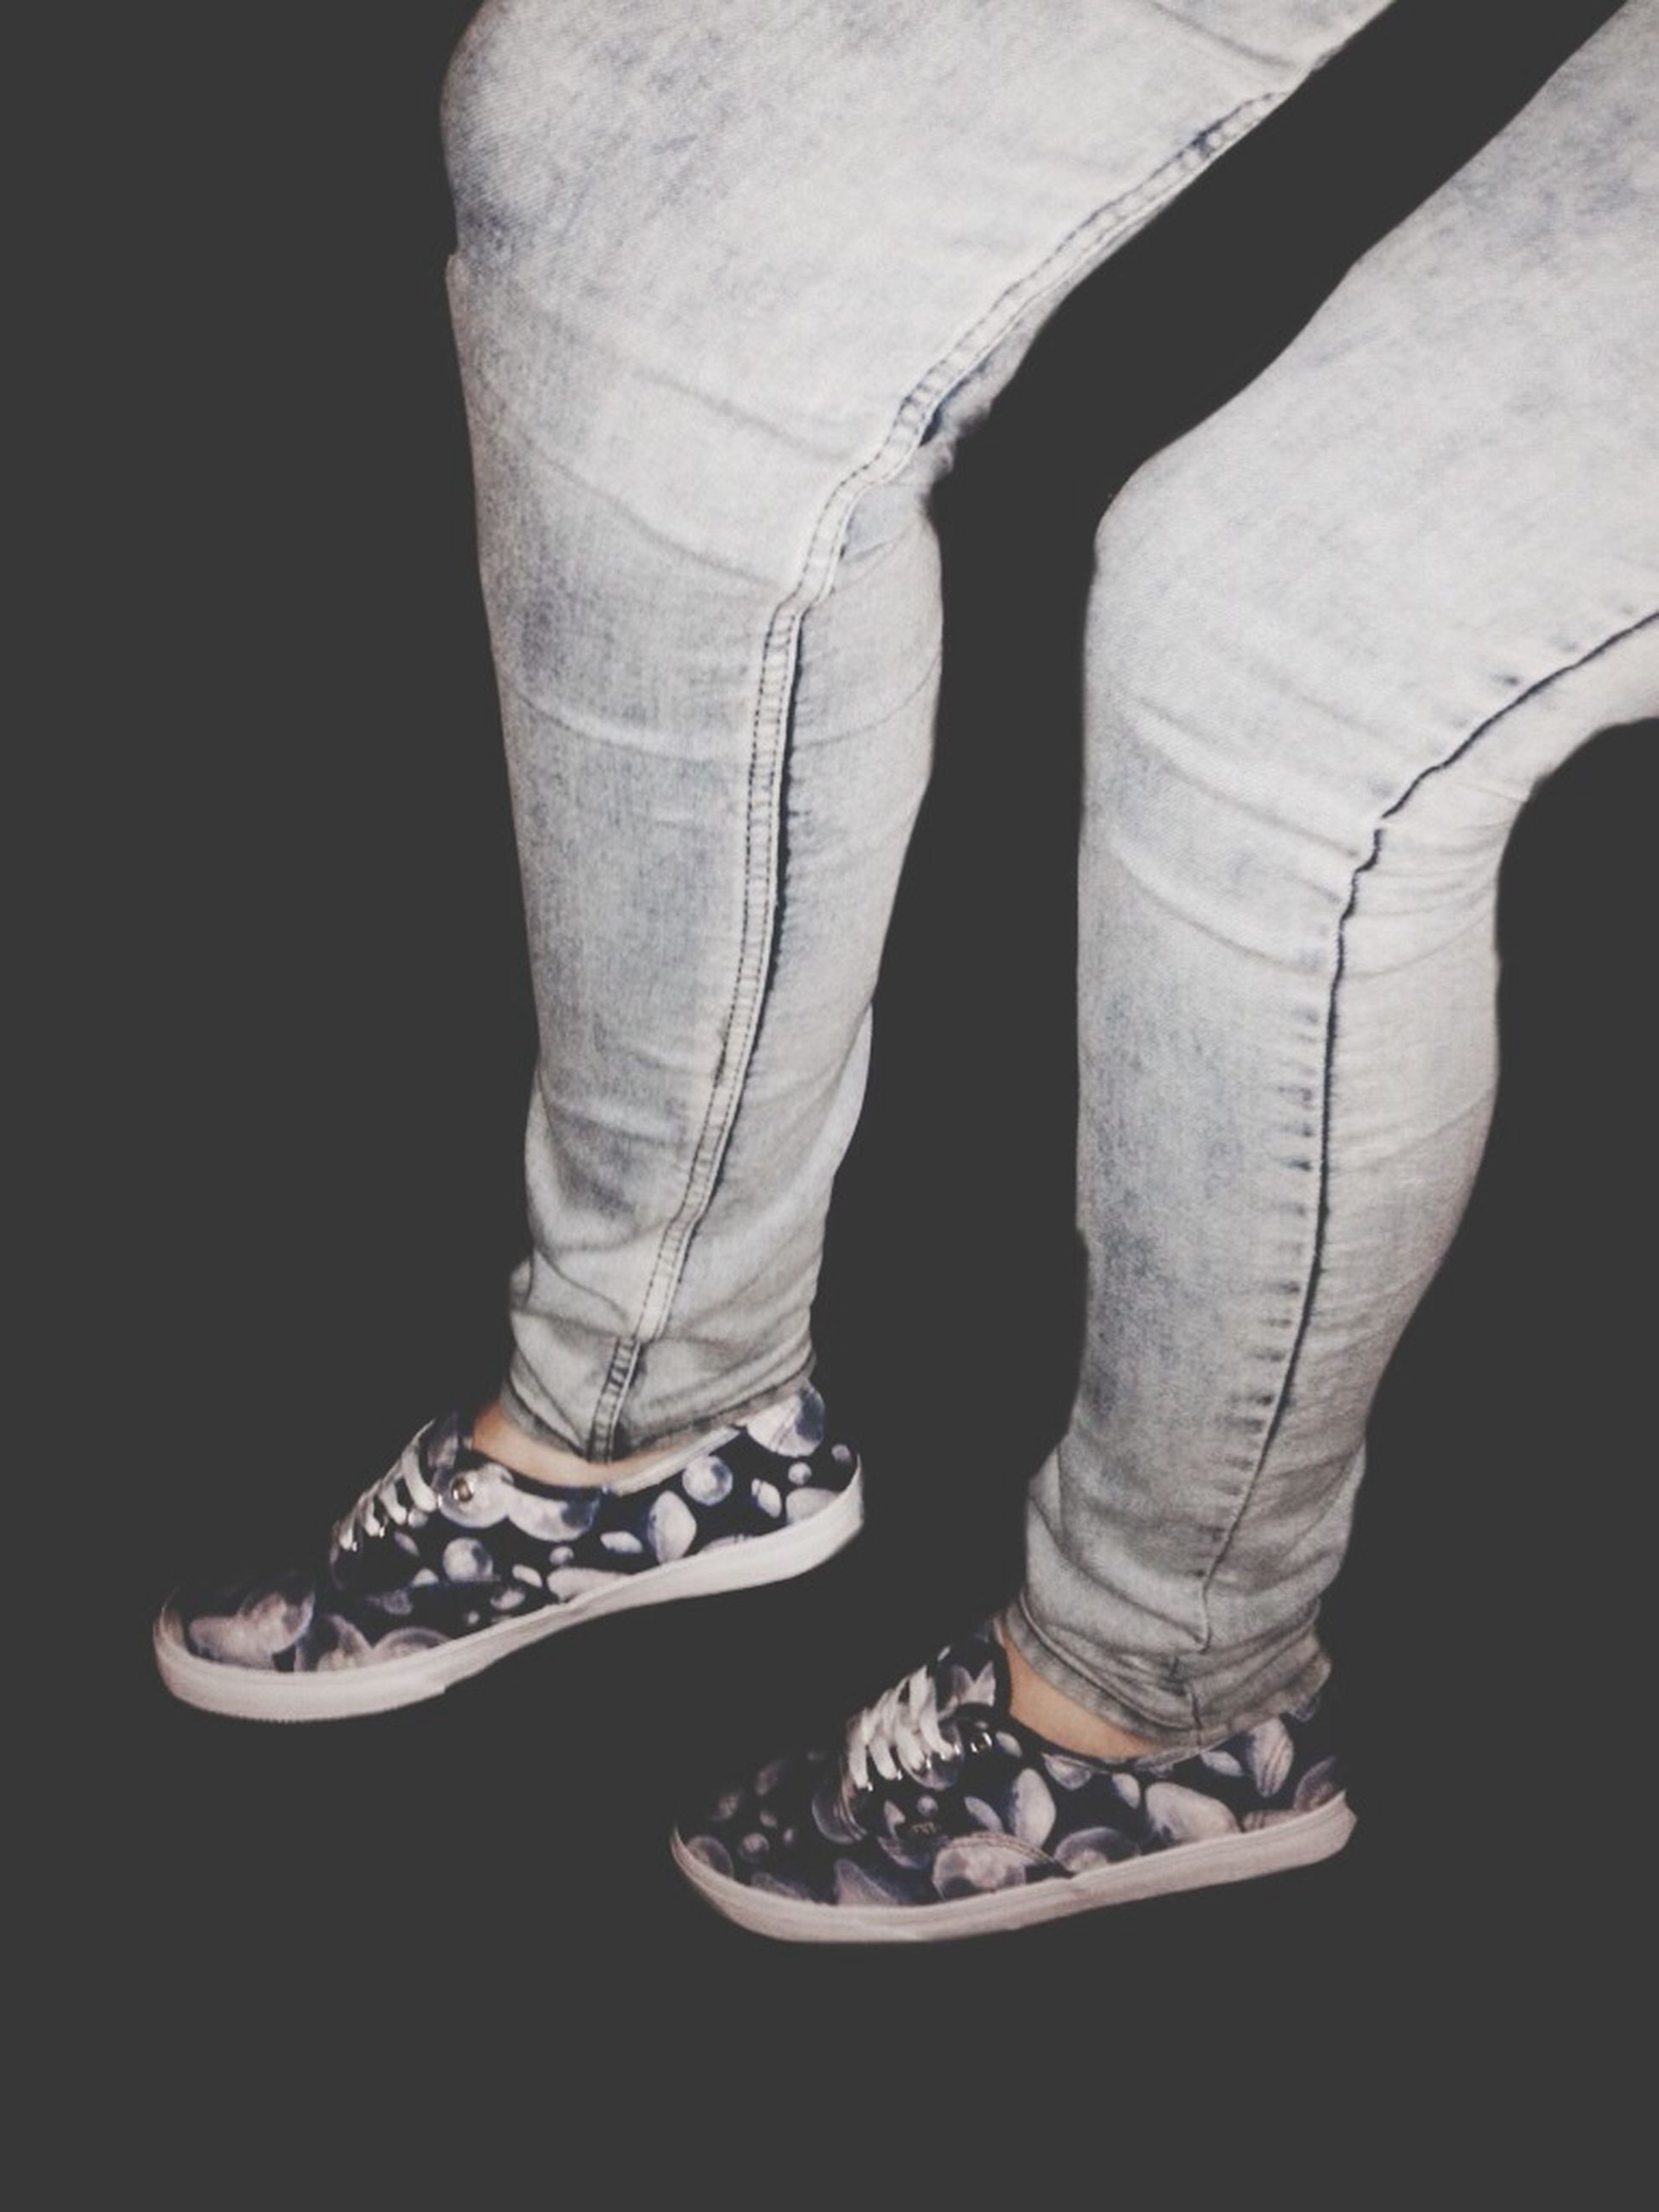 indoors, shoe, studio shot, low section, fashion, black background, person, standing, lifestyles, men, close-up, footwear, copy space, jeans, casual clothing, dark